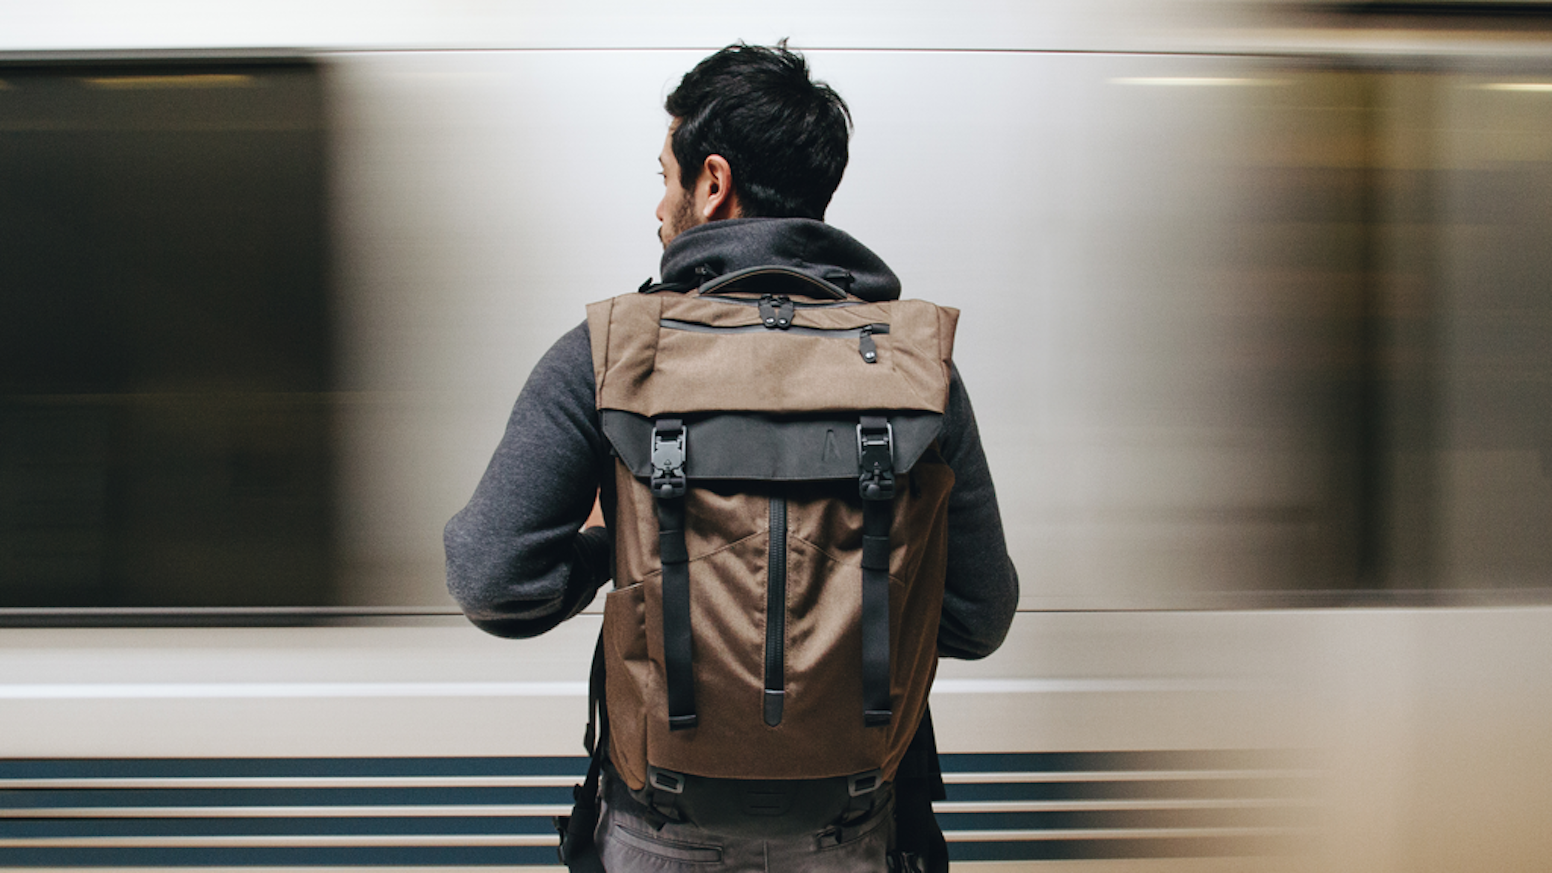 d052b02d873e The Ultimate Modular Backpack keeps you organized for daily carry and  weekend travels.